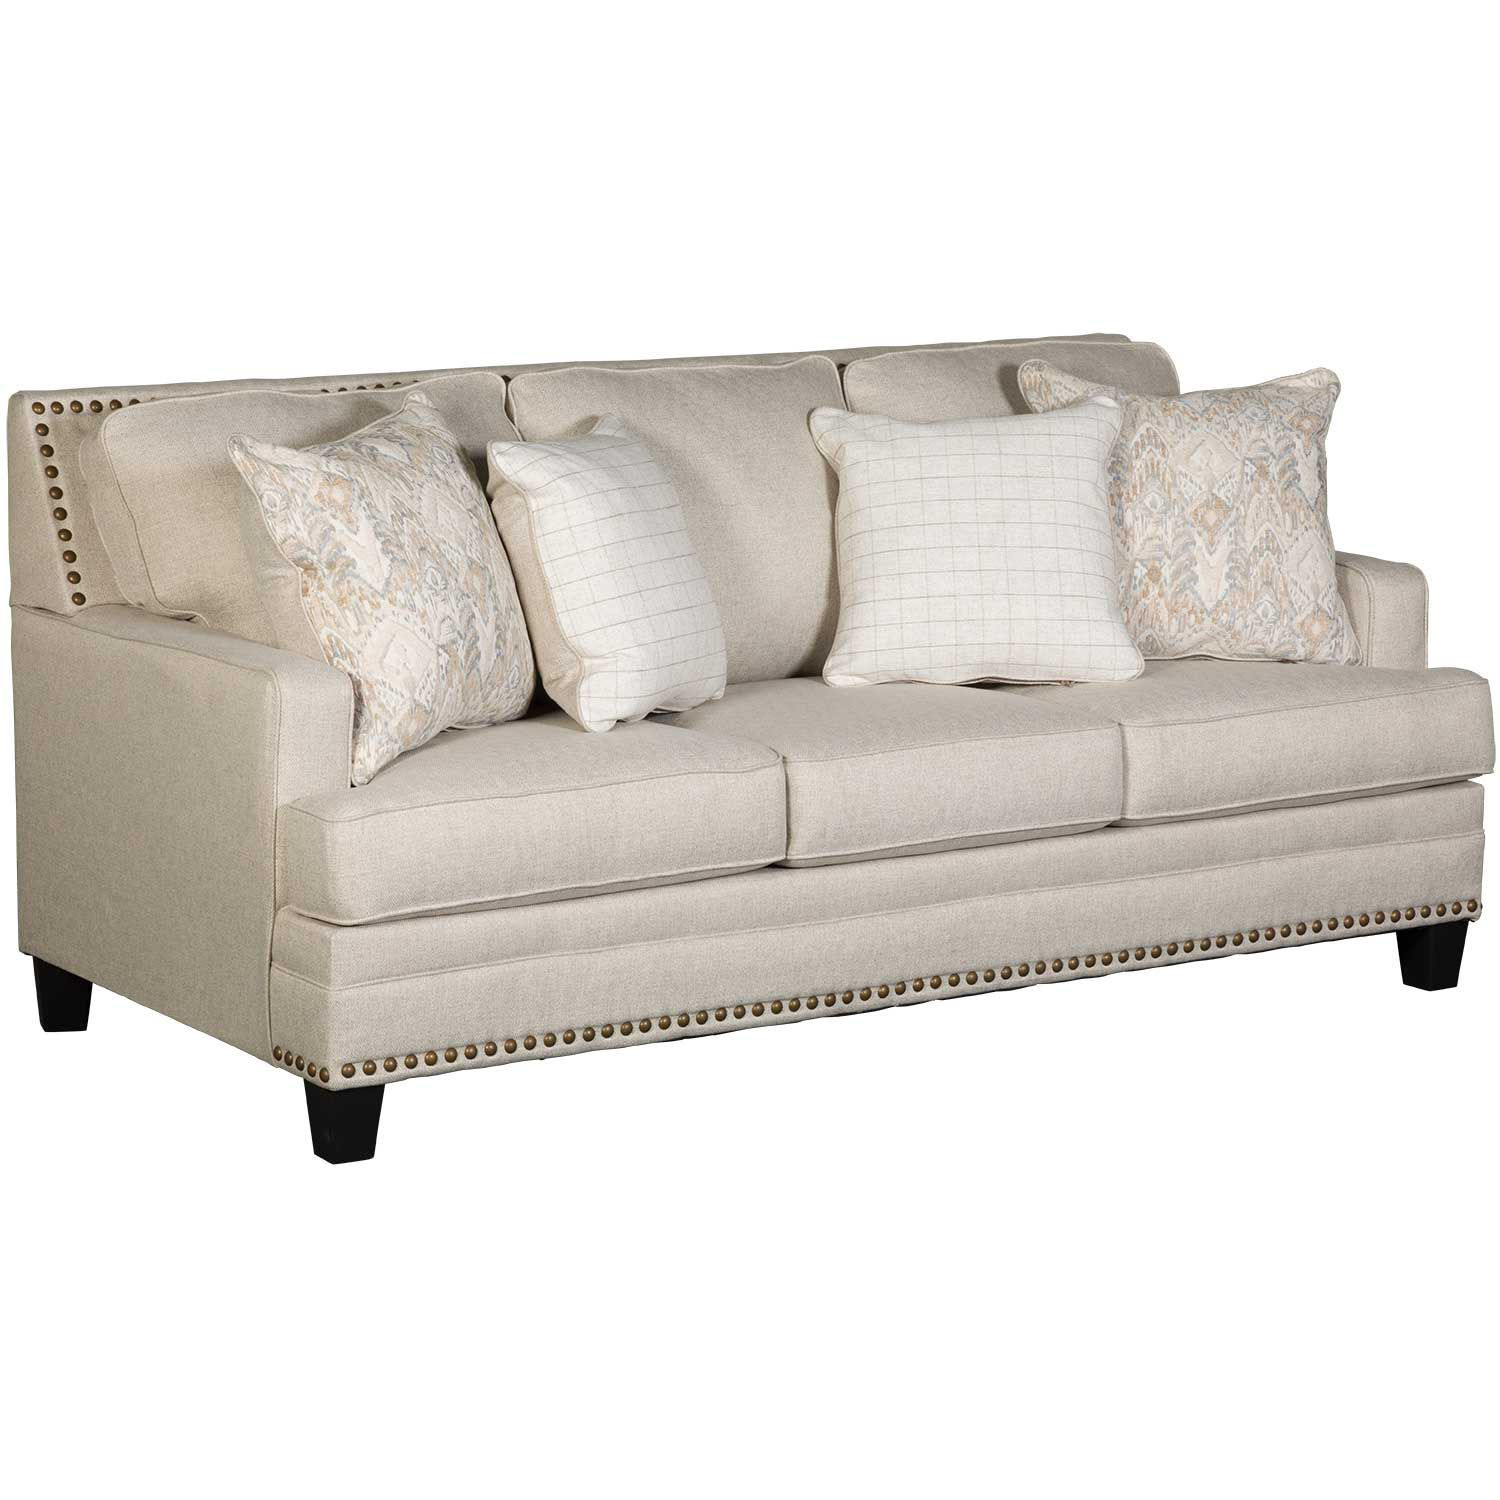 Picture of Claredon Linen Sofa